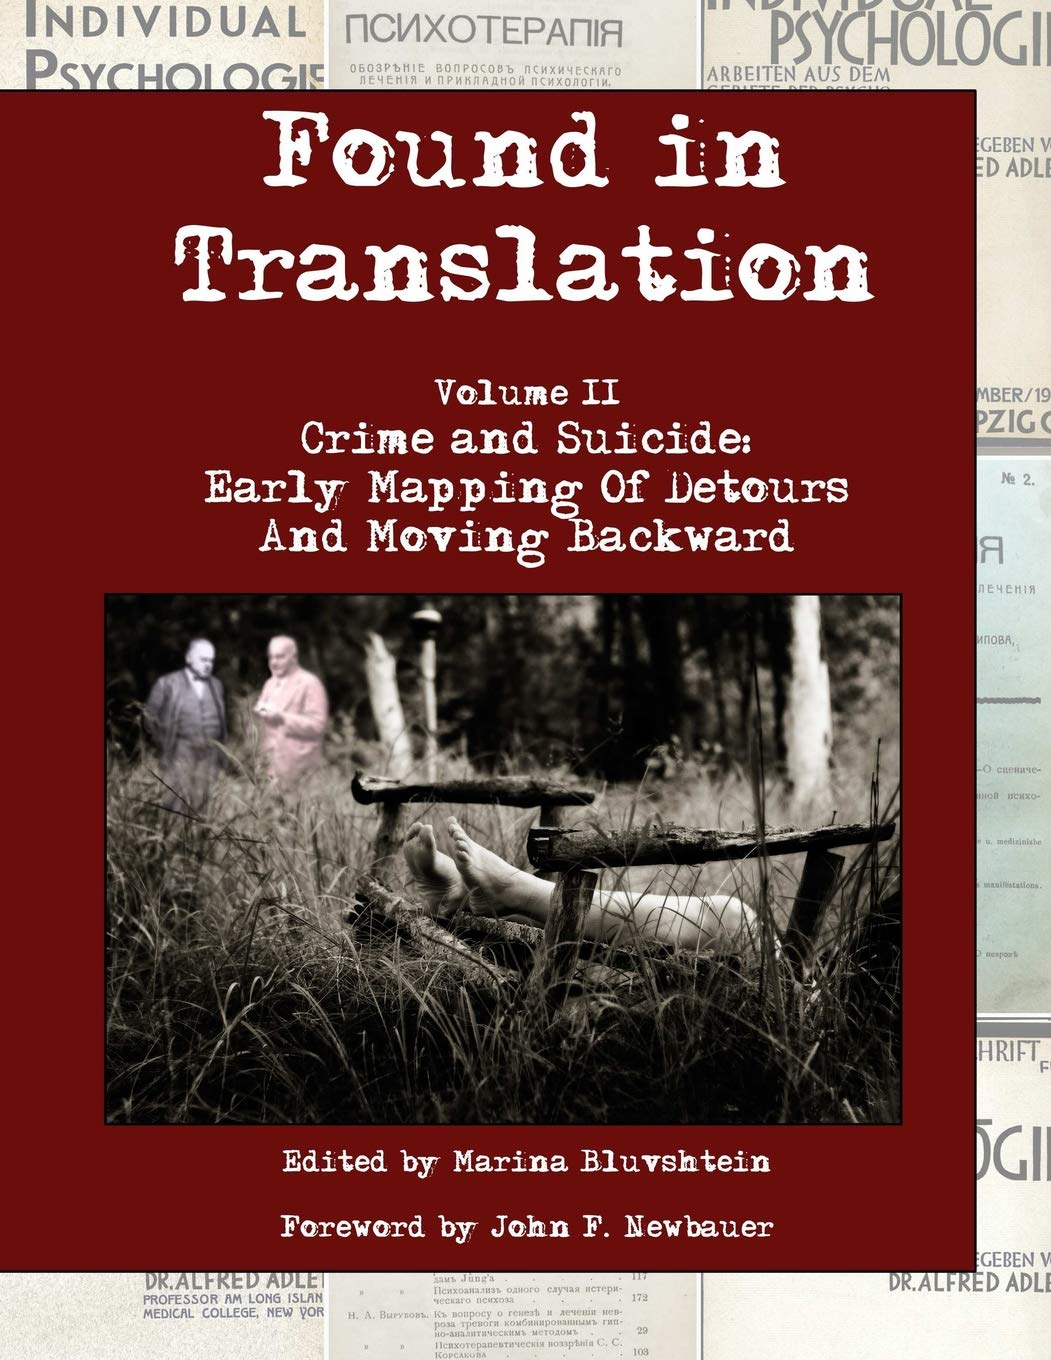 Found in Translation  Volume II  Crime and Suicide: Early